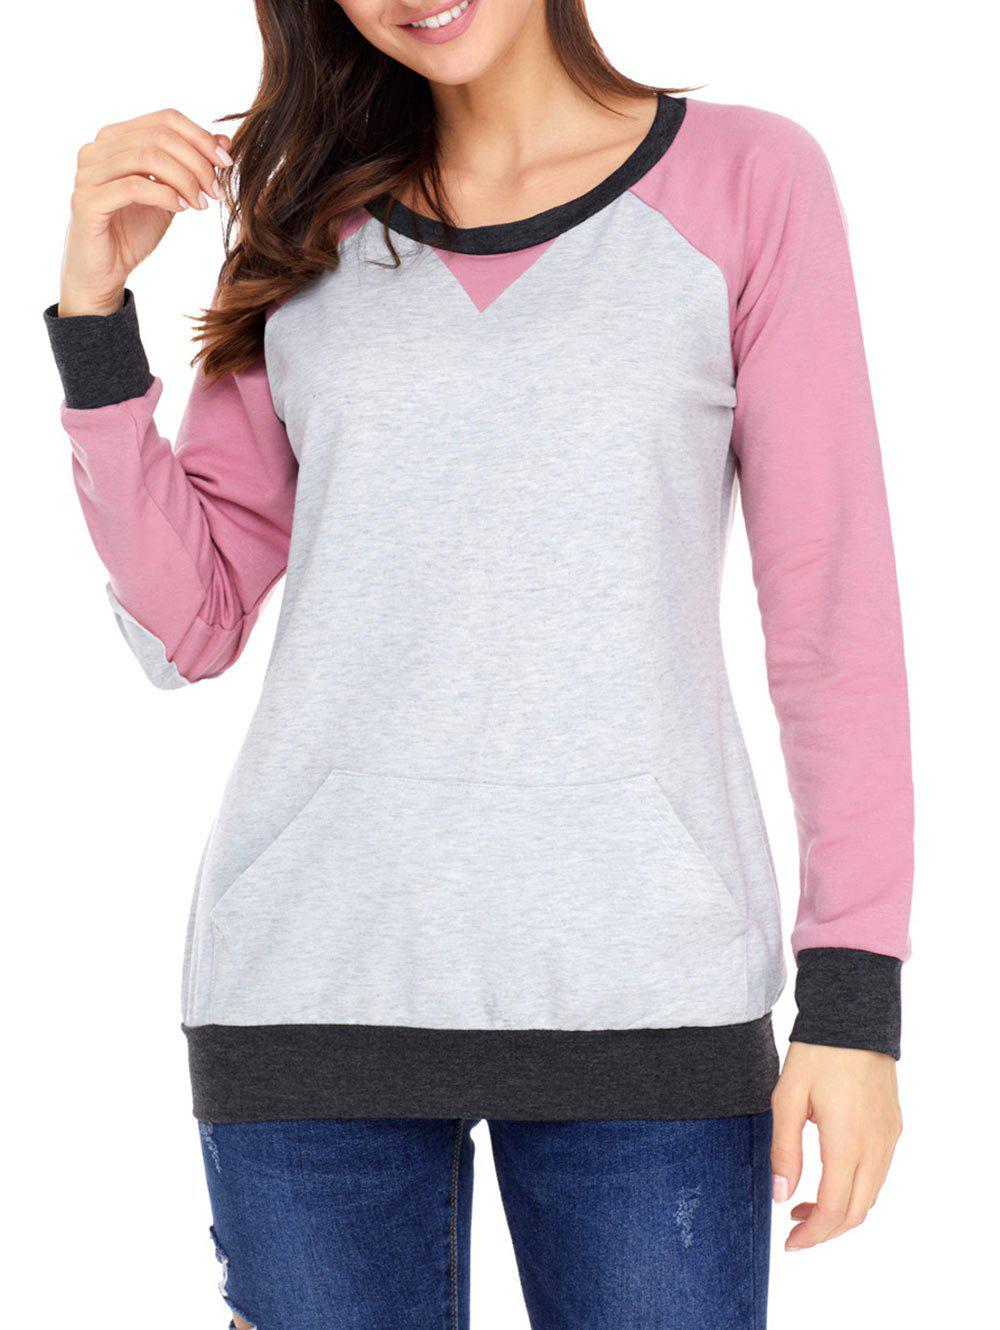 Kangaroo Pocket Color Block Elbow Patch Sweatshirt - PINK 2XL